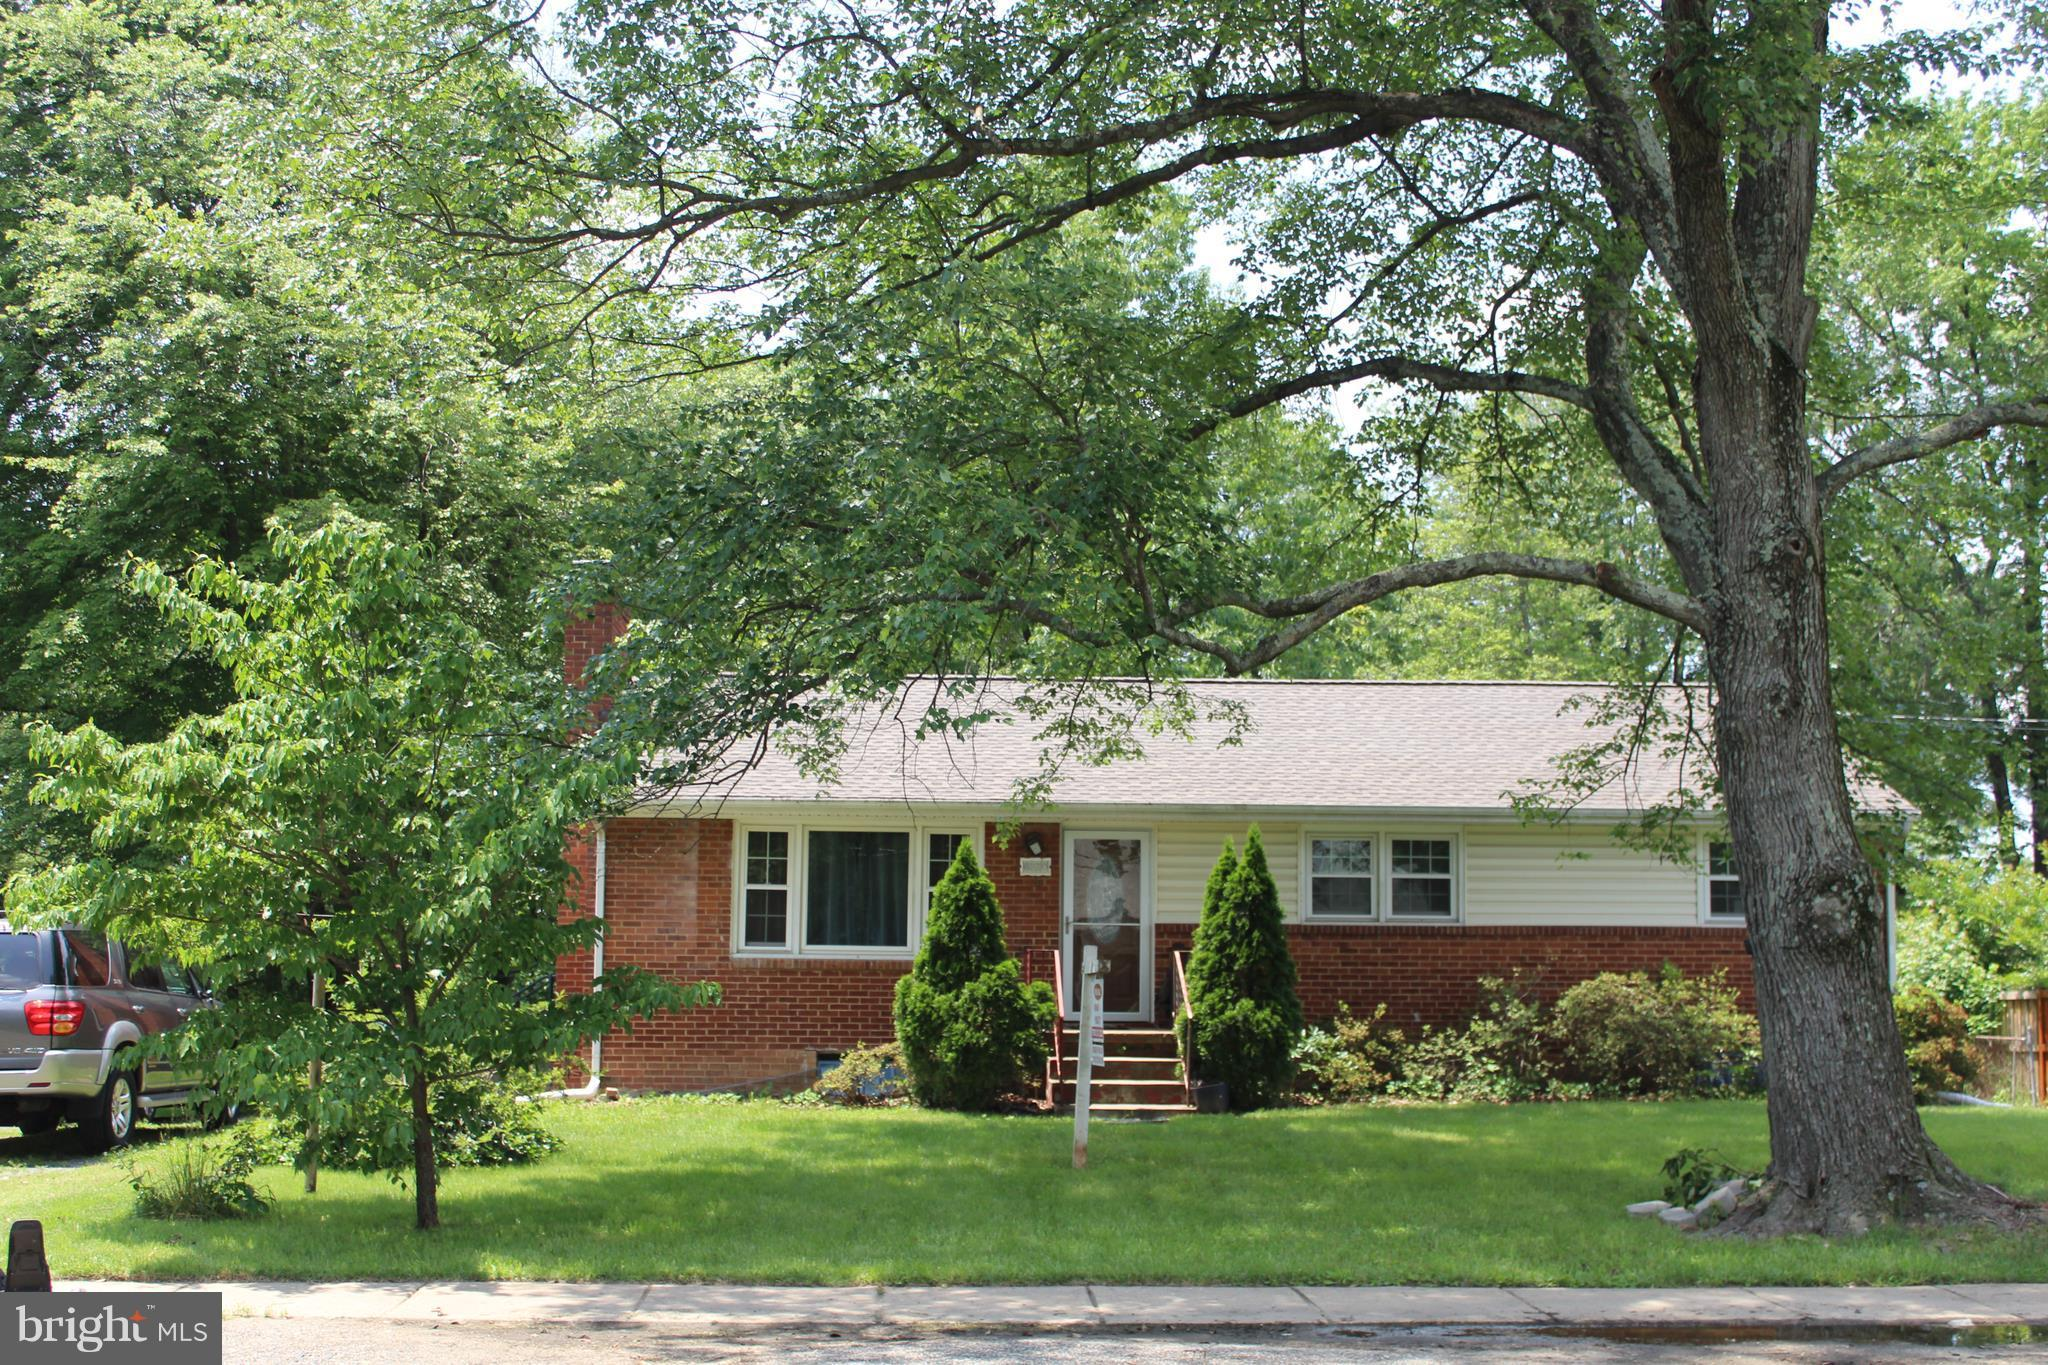 """PRICE IMPROVEMENT.Rambler near everything in Alexandria.Upgraded Kitchen and Main level Bathrooms (2015). LL bath (2005). New Roof (3/2018) and New windows(2014).Spacious finished basement w/Fireplace. Big flat lot w/fire pit. Backs to Edison HS. 5 minutes to Kingstowne Subway Sation,10 min to Springfield mall, 18 min to Old Towne,25 min to Ft. Belvoir.Quick access to 395/495.""""AS IS"""""""